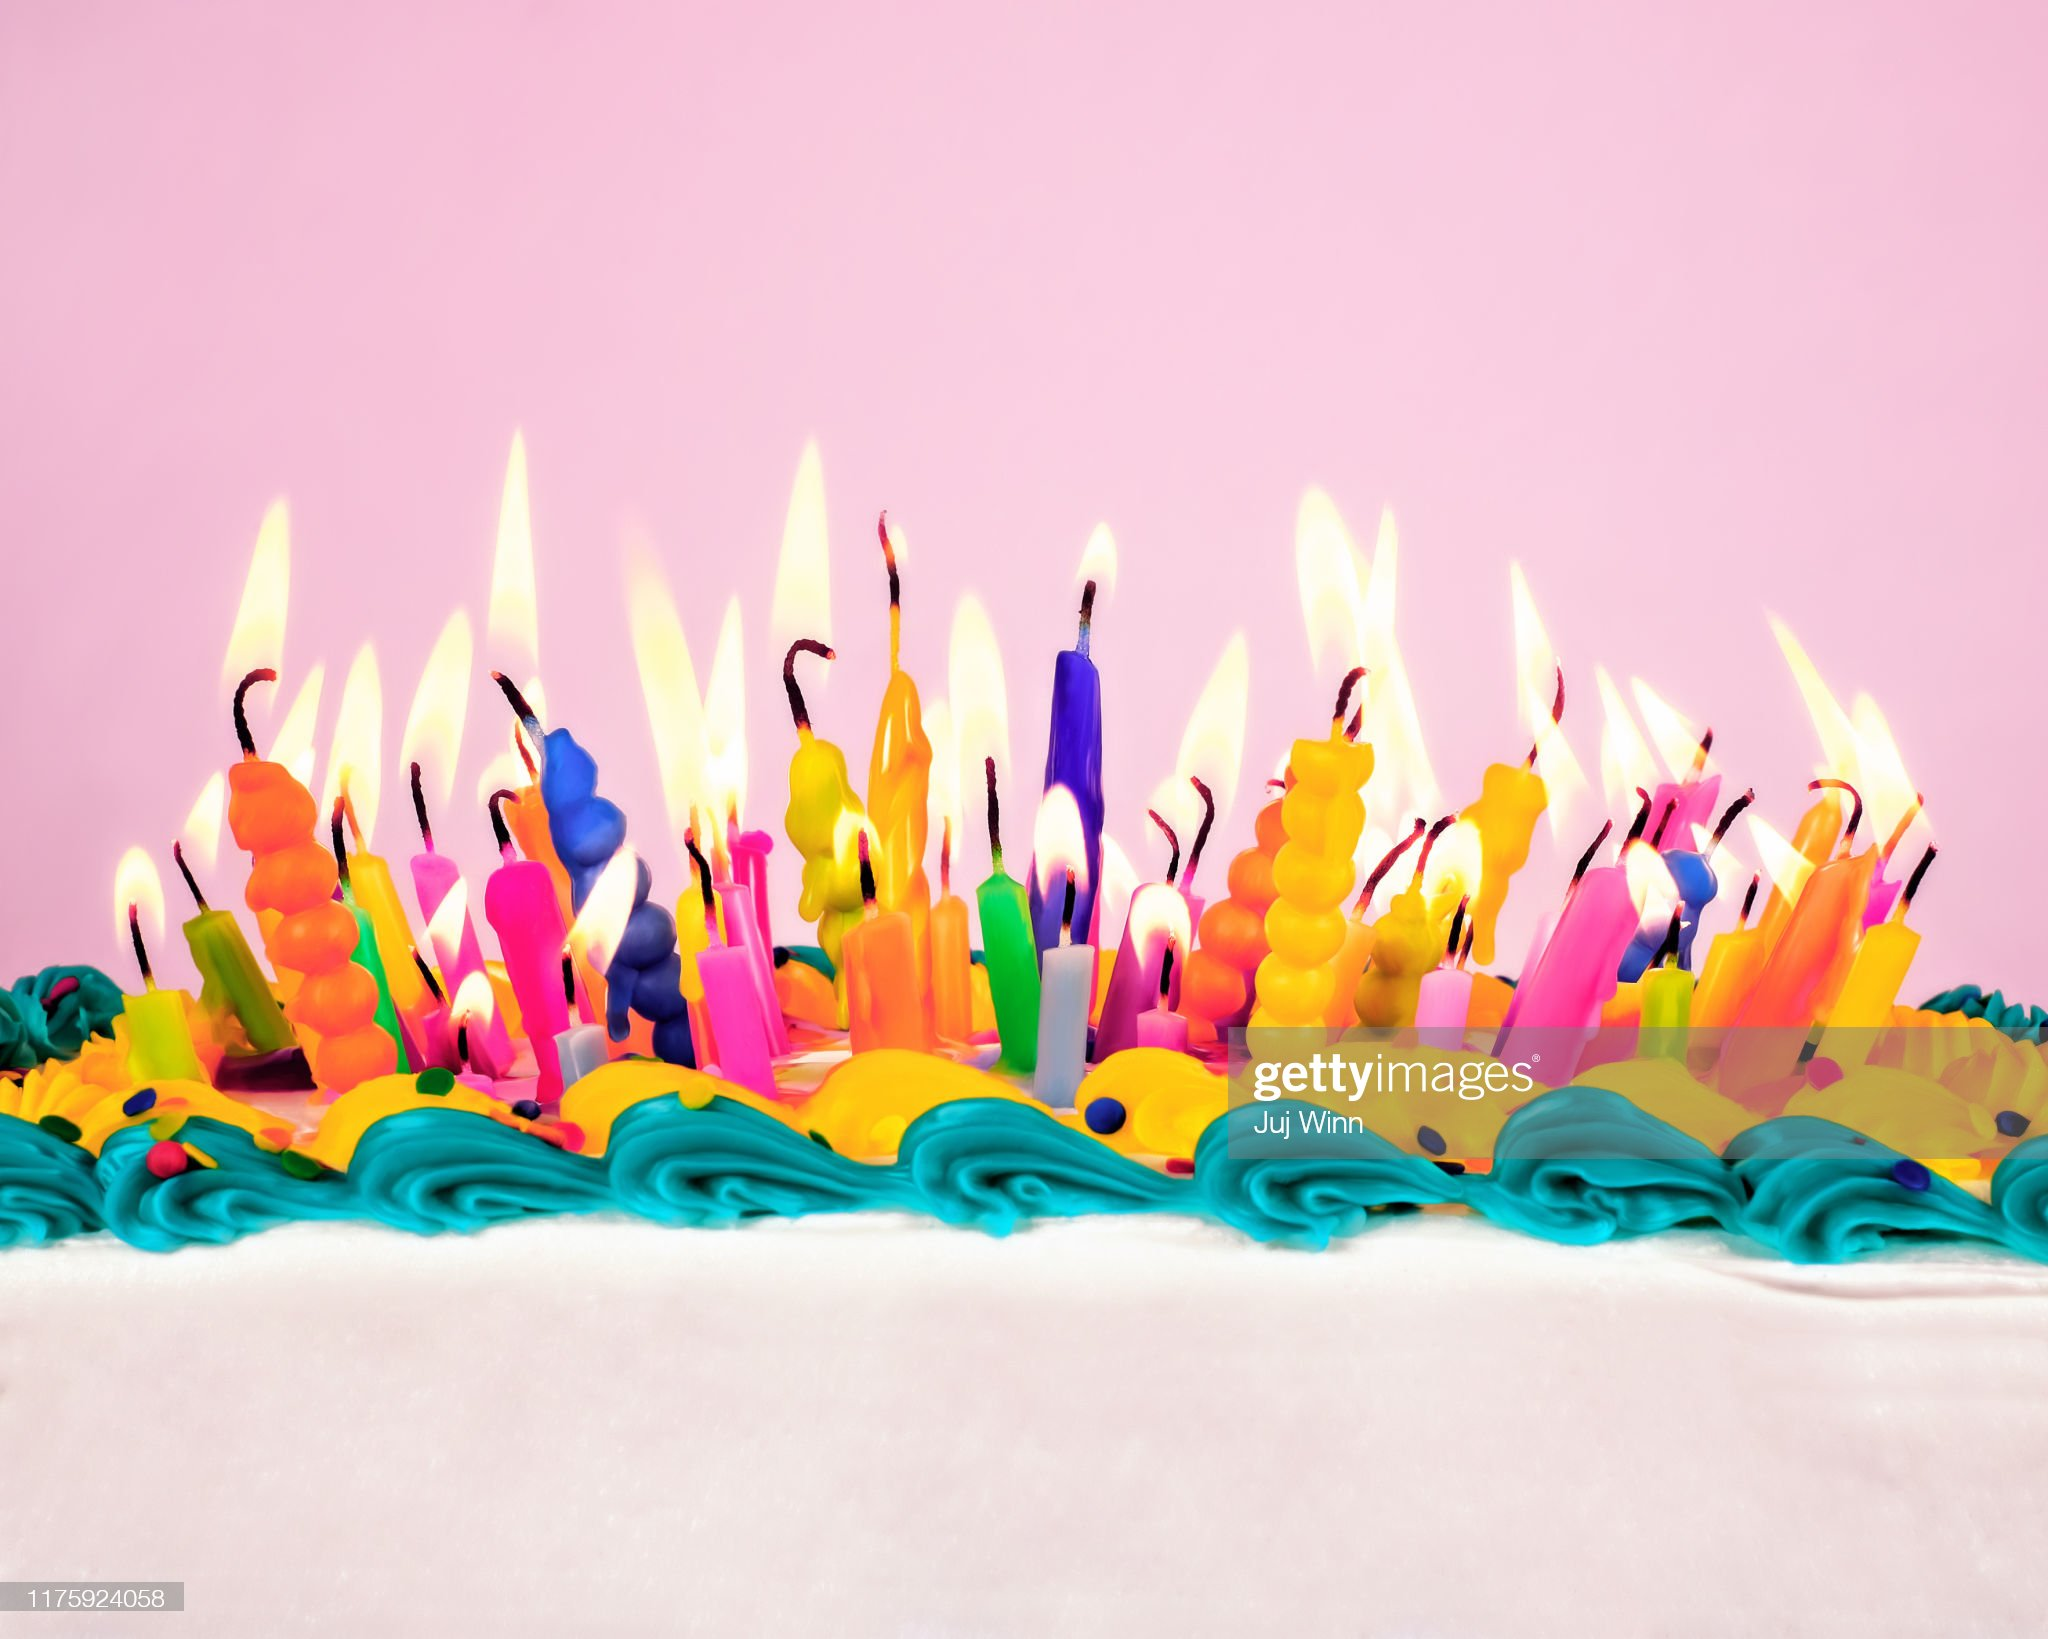 Birthday candles on a cake : Stock Photo